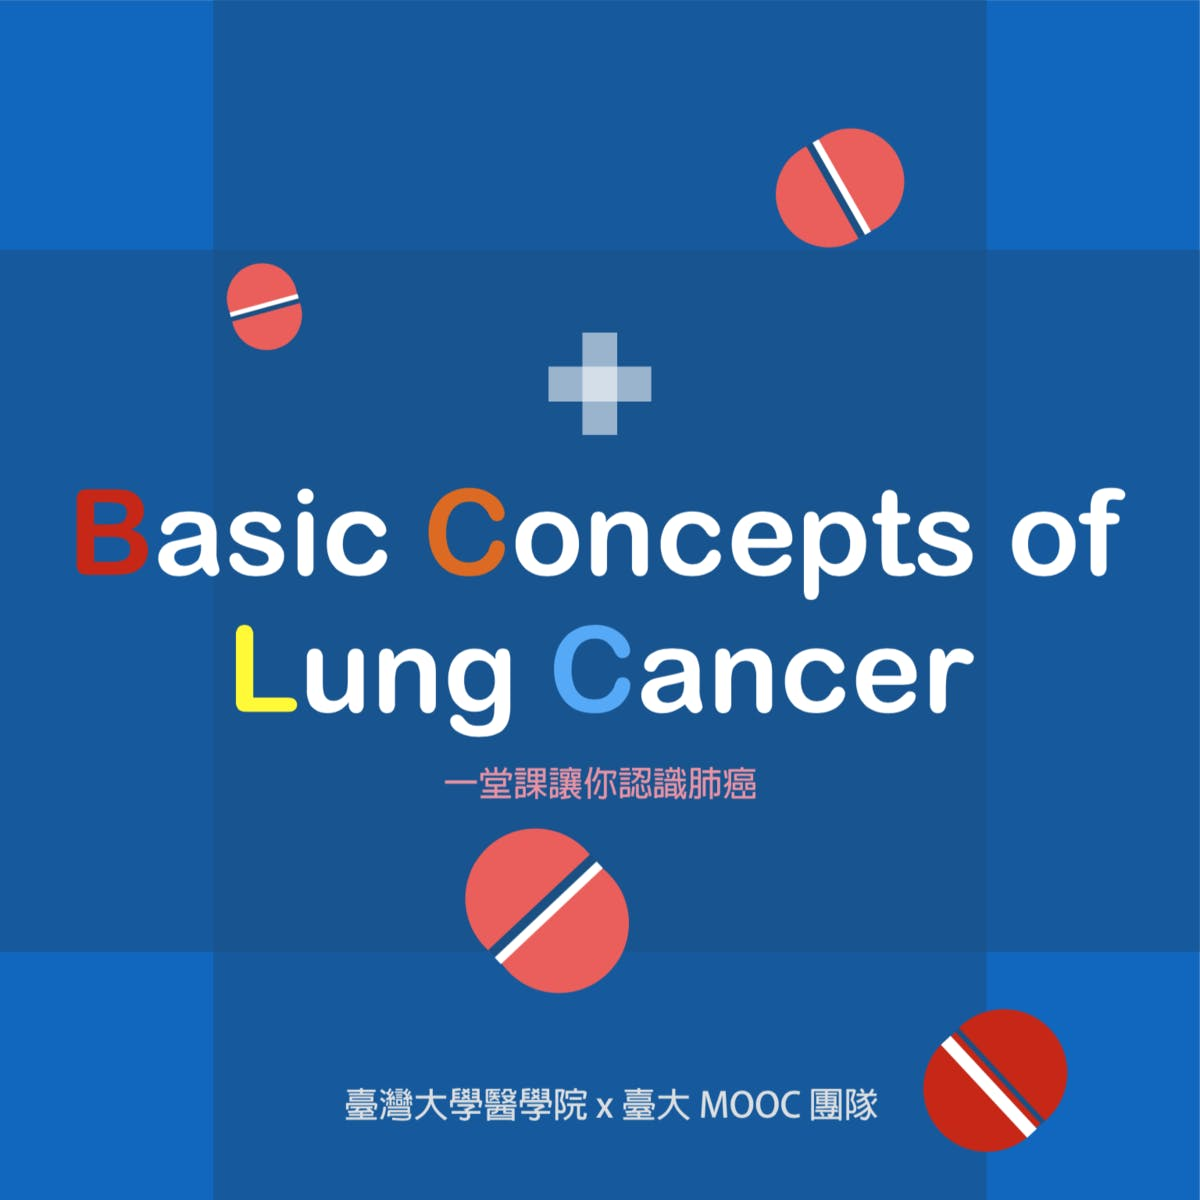 一堂課讓你認識肺癌(Basic Concepts of Lung Cancer: Diagnosis and Treatment)